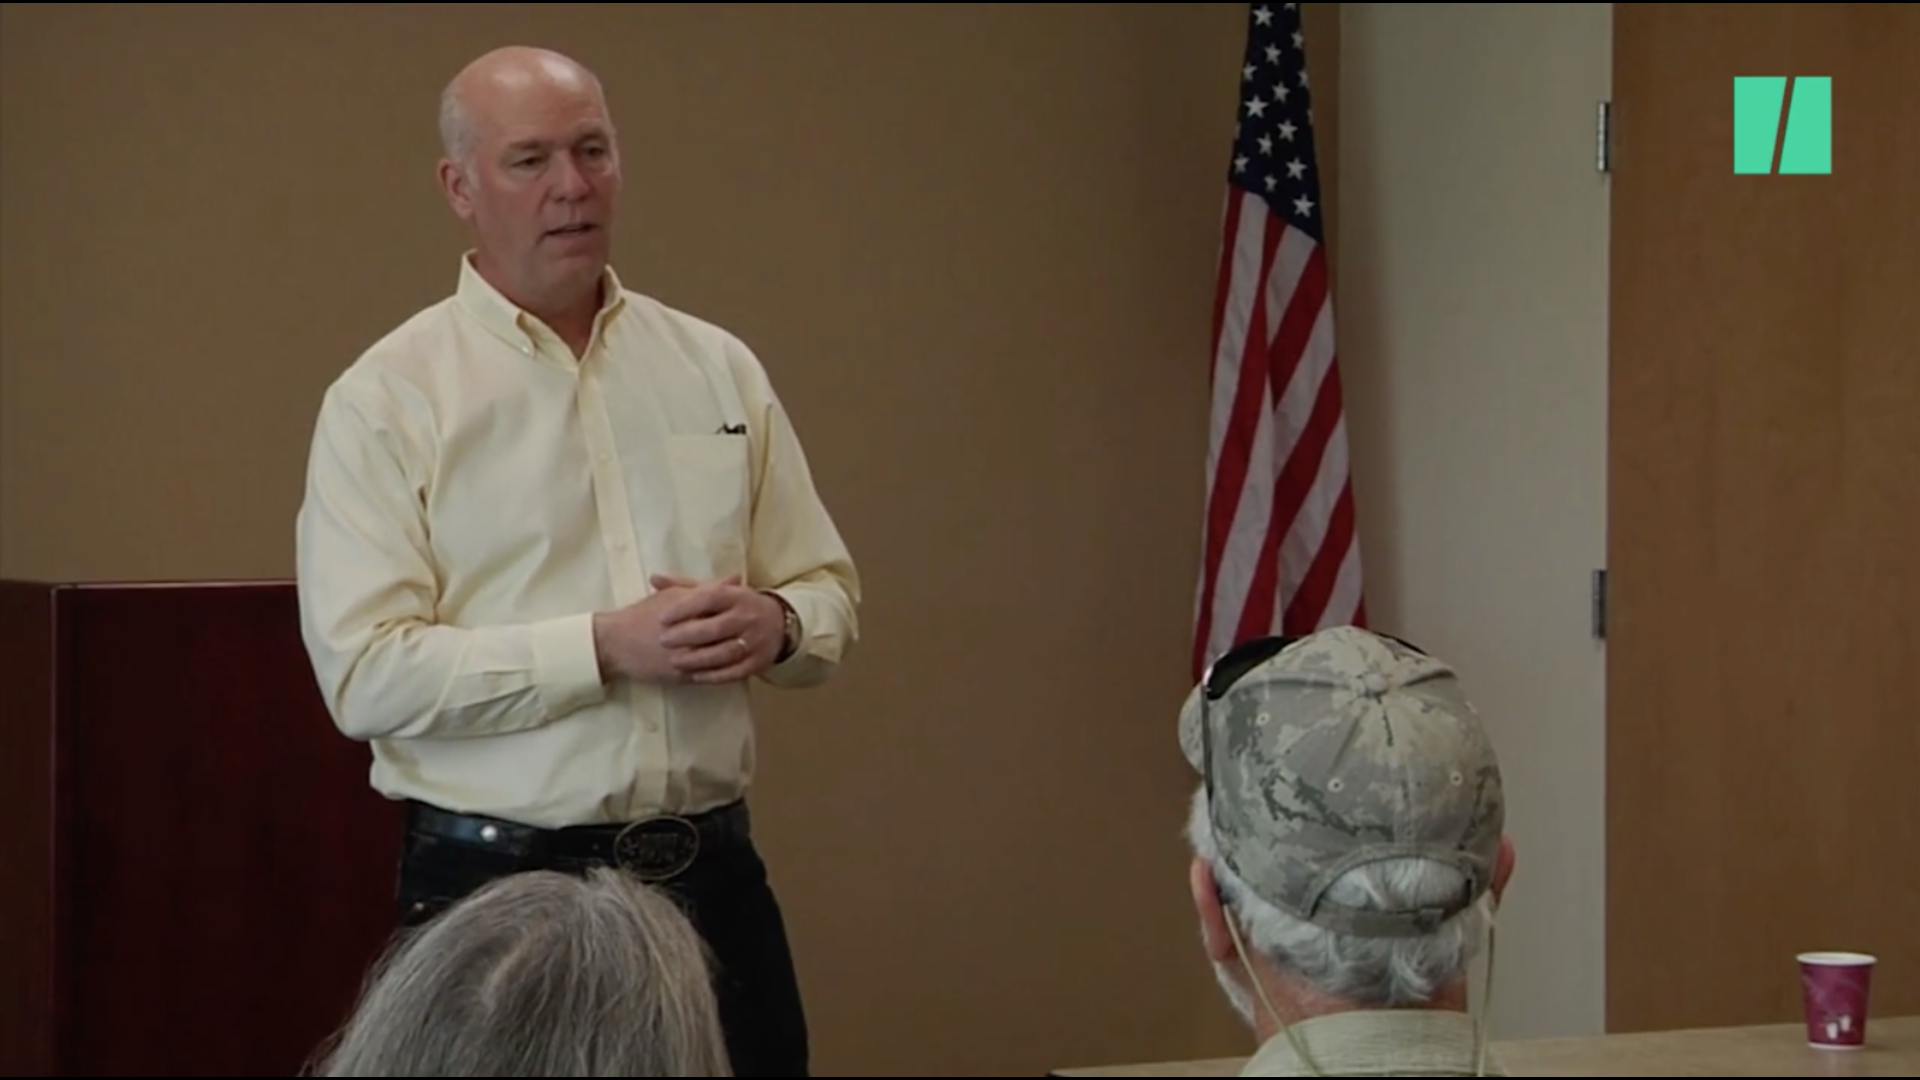 South Carolina Democrat Slams GOP Opponent's Support For Social Security Cuts